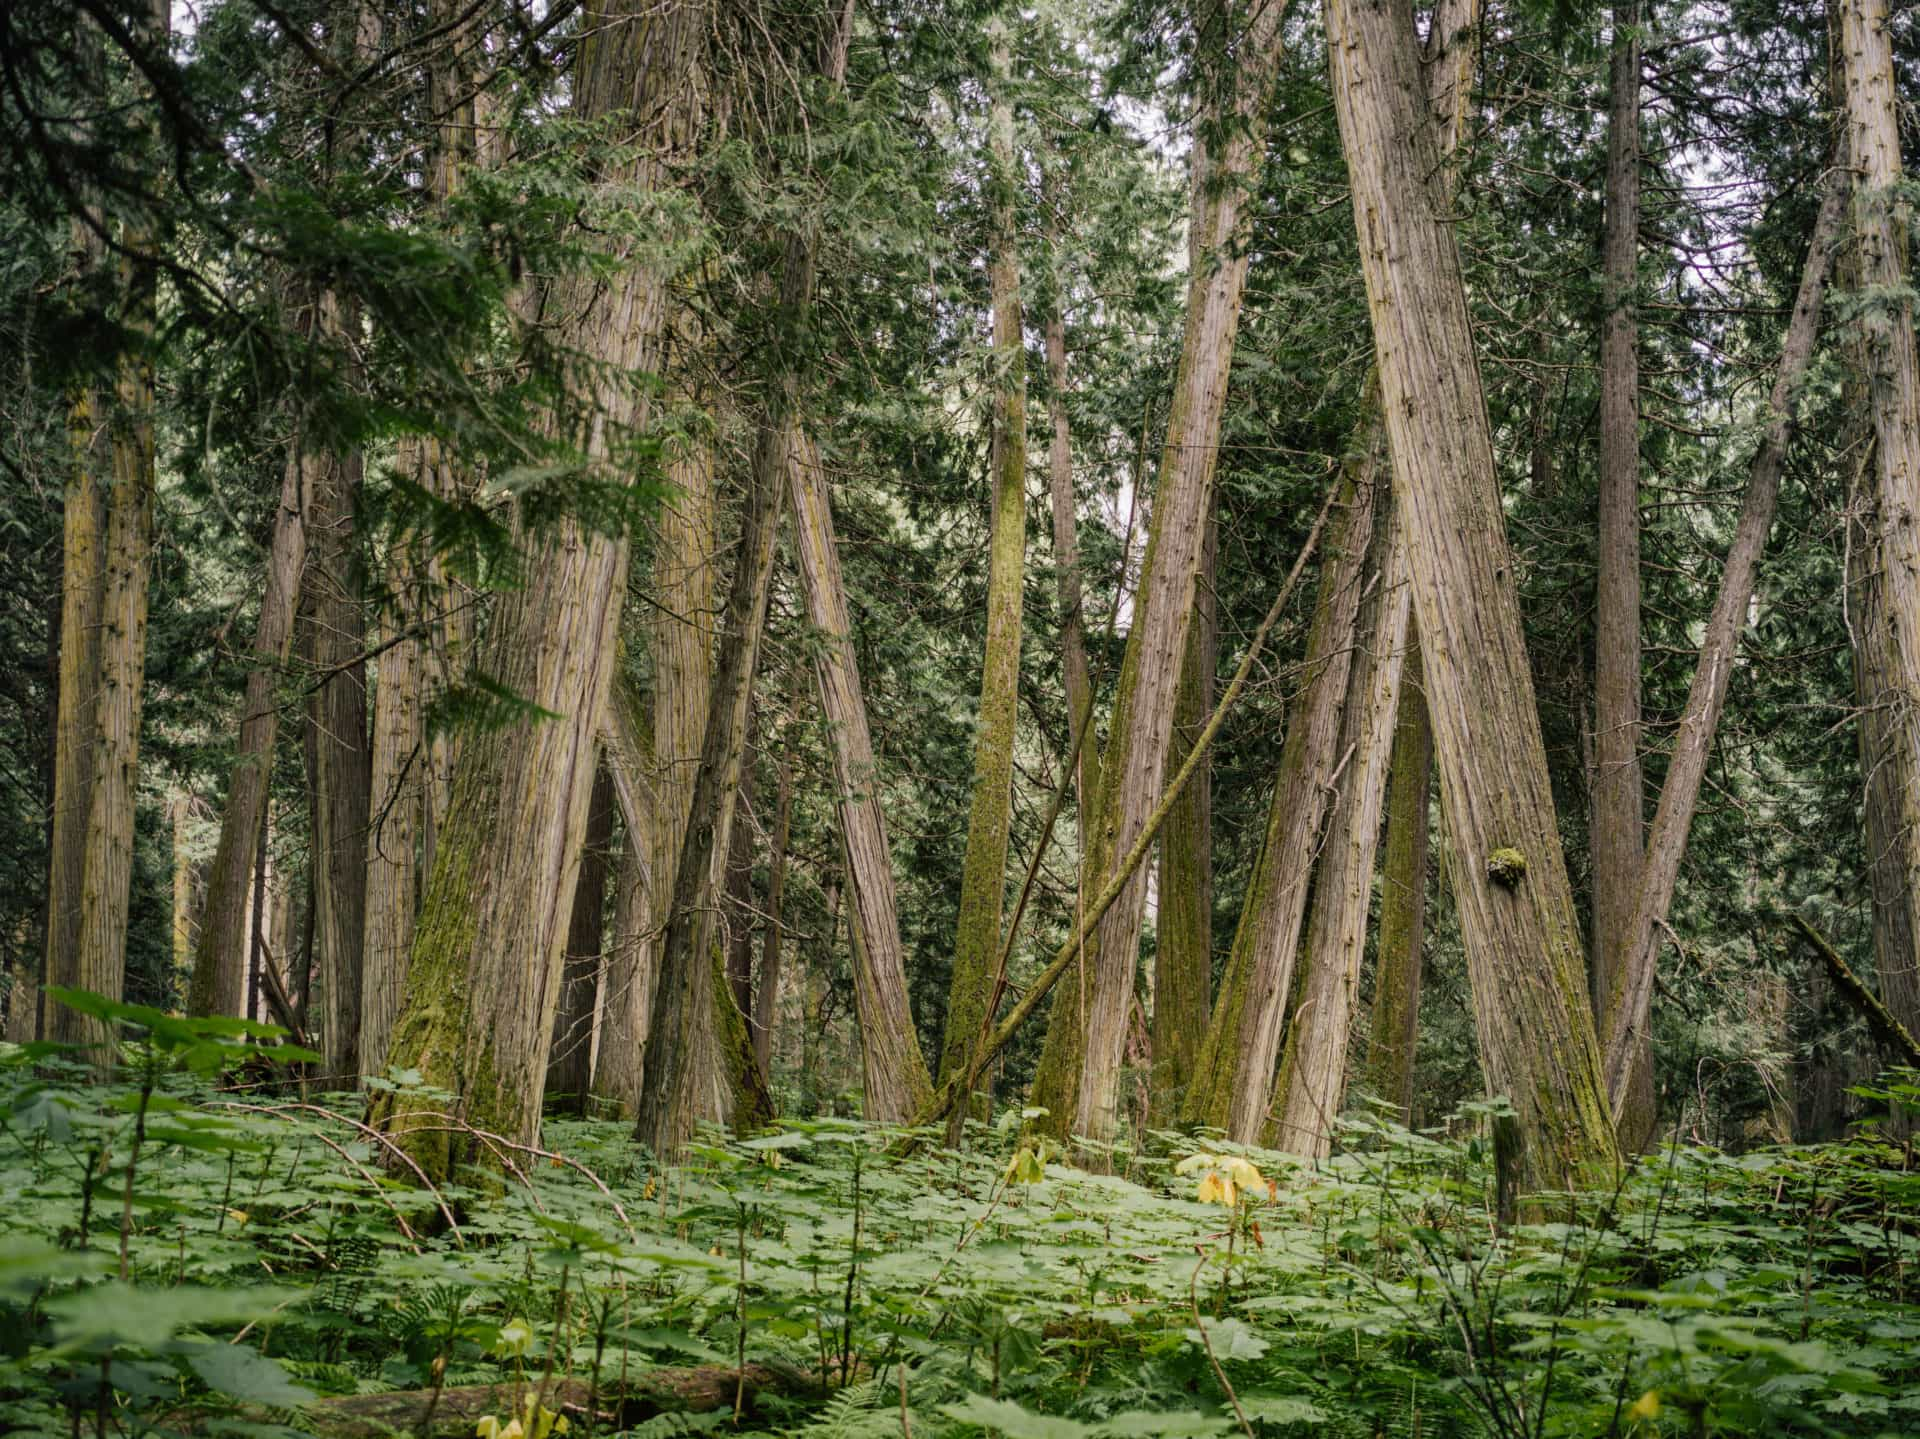 B.C.'s rare inland temperate rainforest